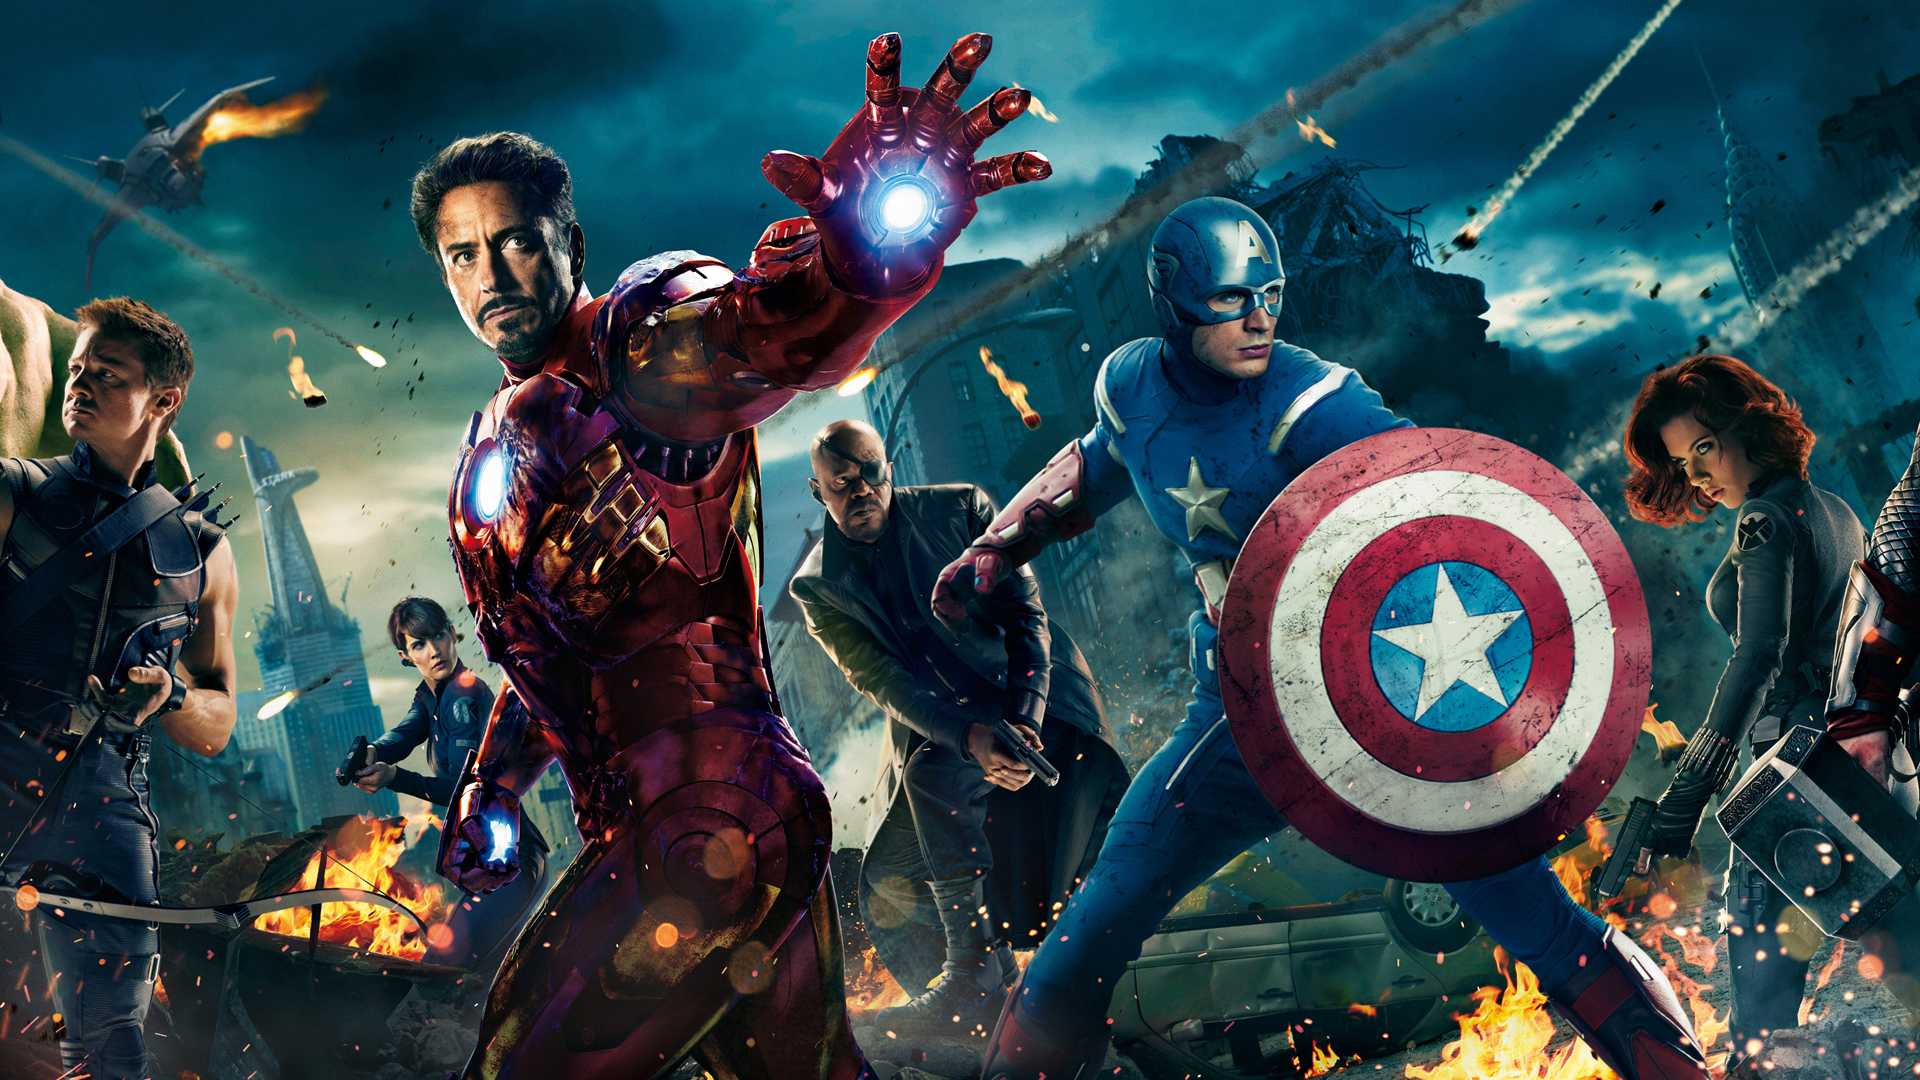 Avengers 3 Wallpaper HD with 1920x1080 Resolution